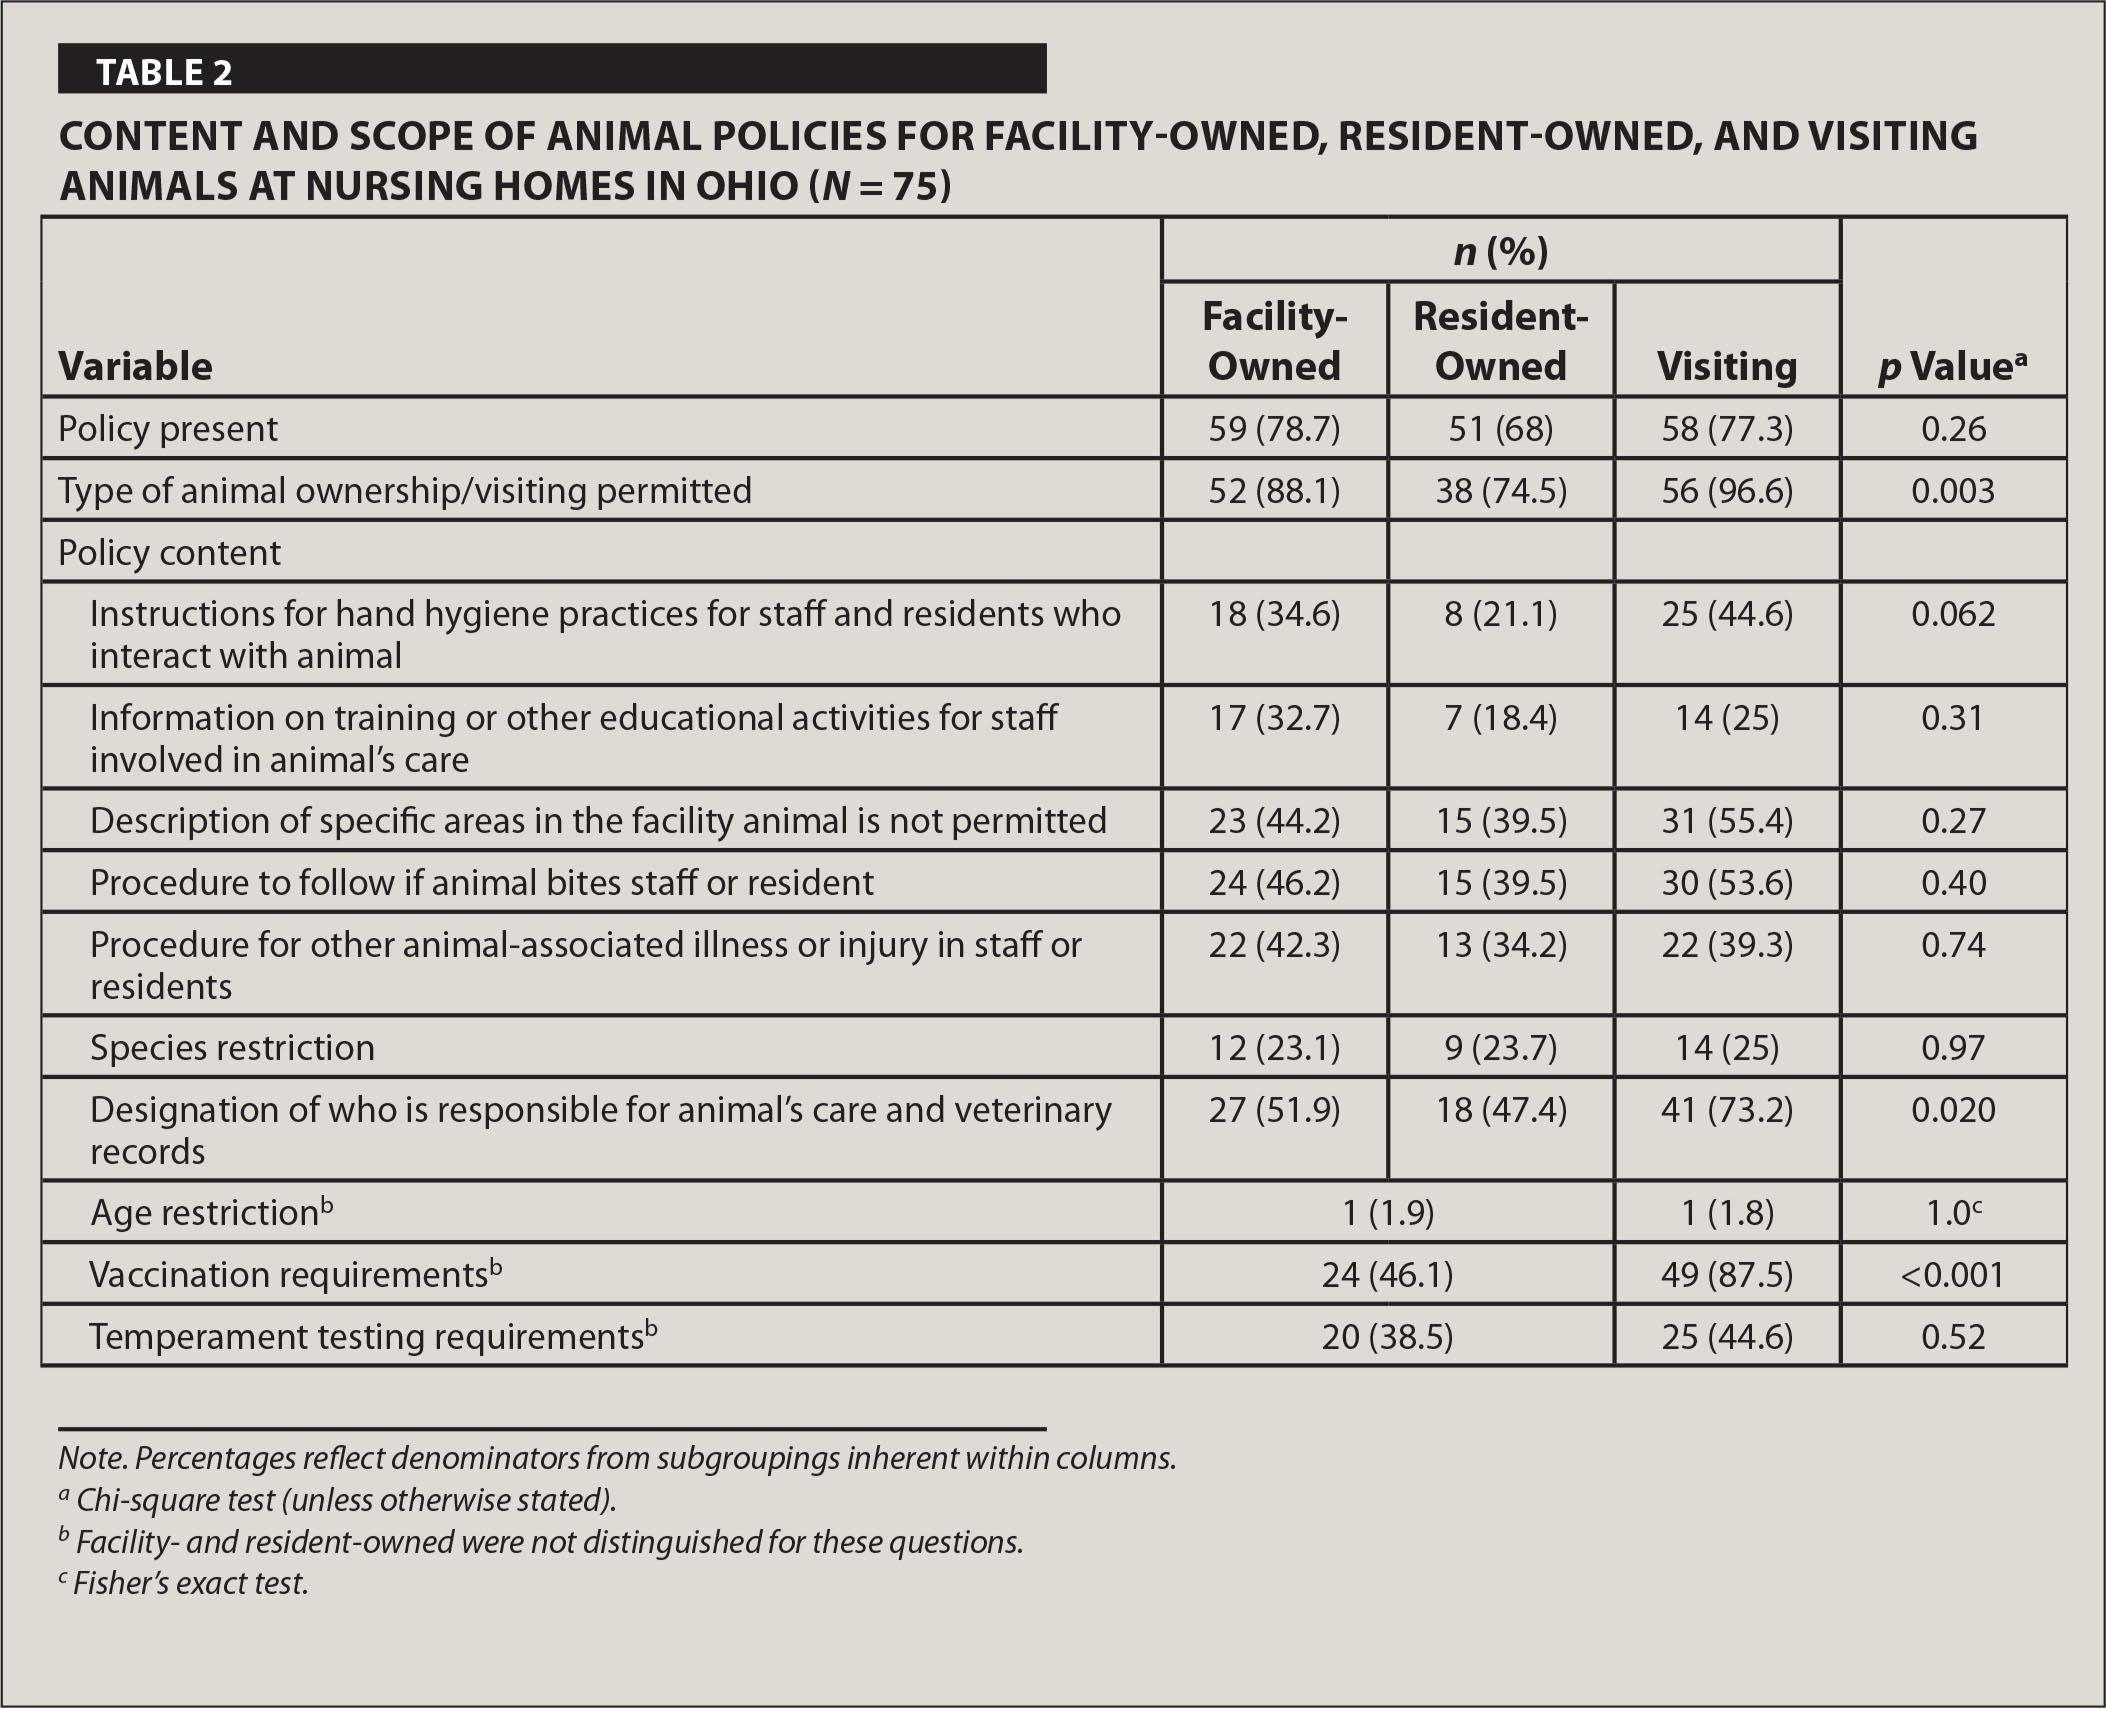 Content and Scope of Animal Policies for Facility-Owned, Resident-Owned, and Visiting Animals at Nursing Homes in Ohio (N = 75)